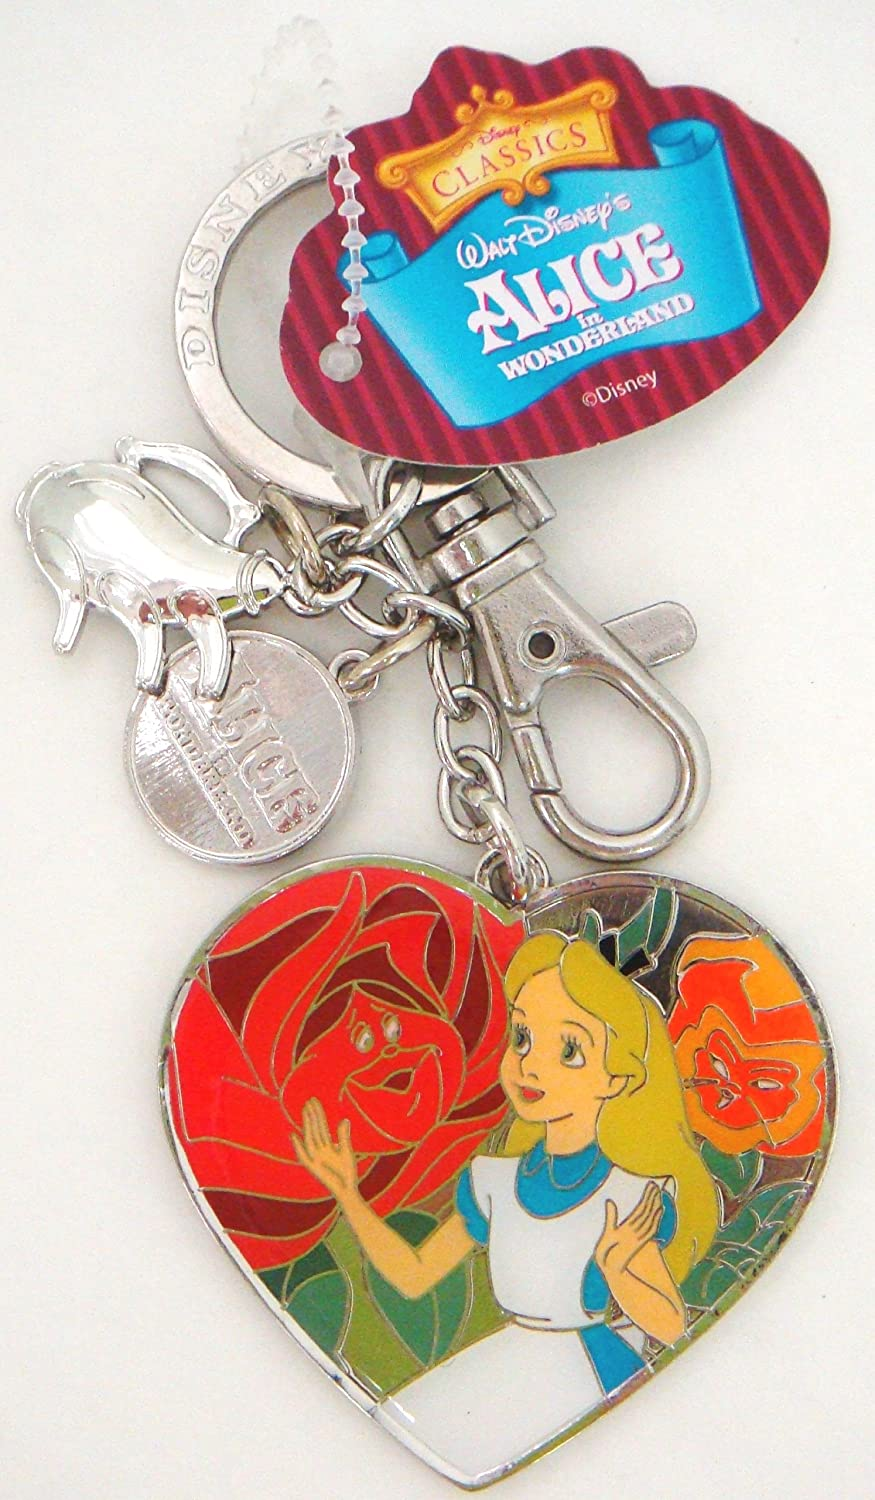 Metal - Key Chain - Disney - Alice Alice in Disney Wonderland - Flowers Pewter 25202 B002X0ET6G, Viet Store:0d2fe8f8 --- saltovarv.se